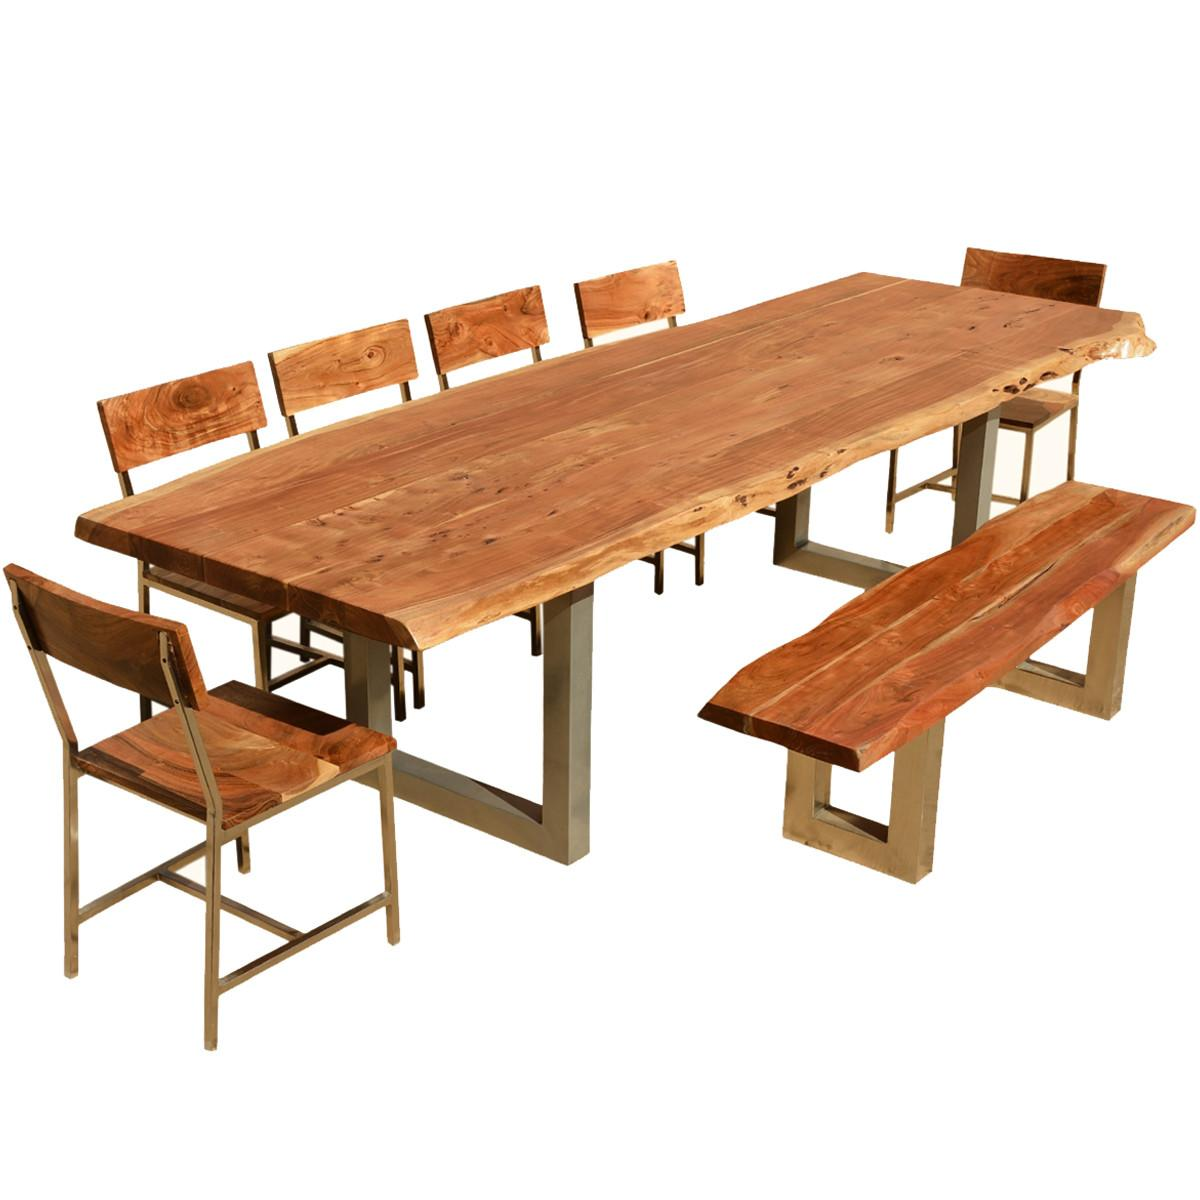 117 Live Edge Dining Table Chairs Bench Acacia